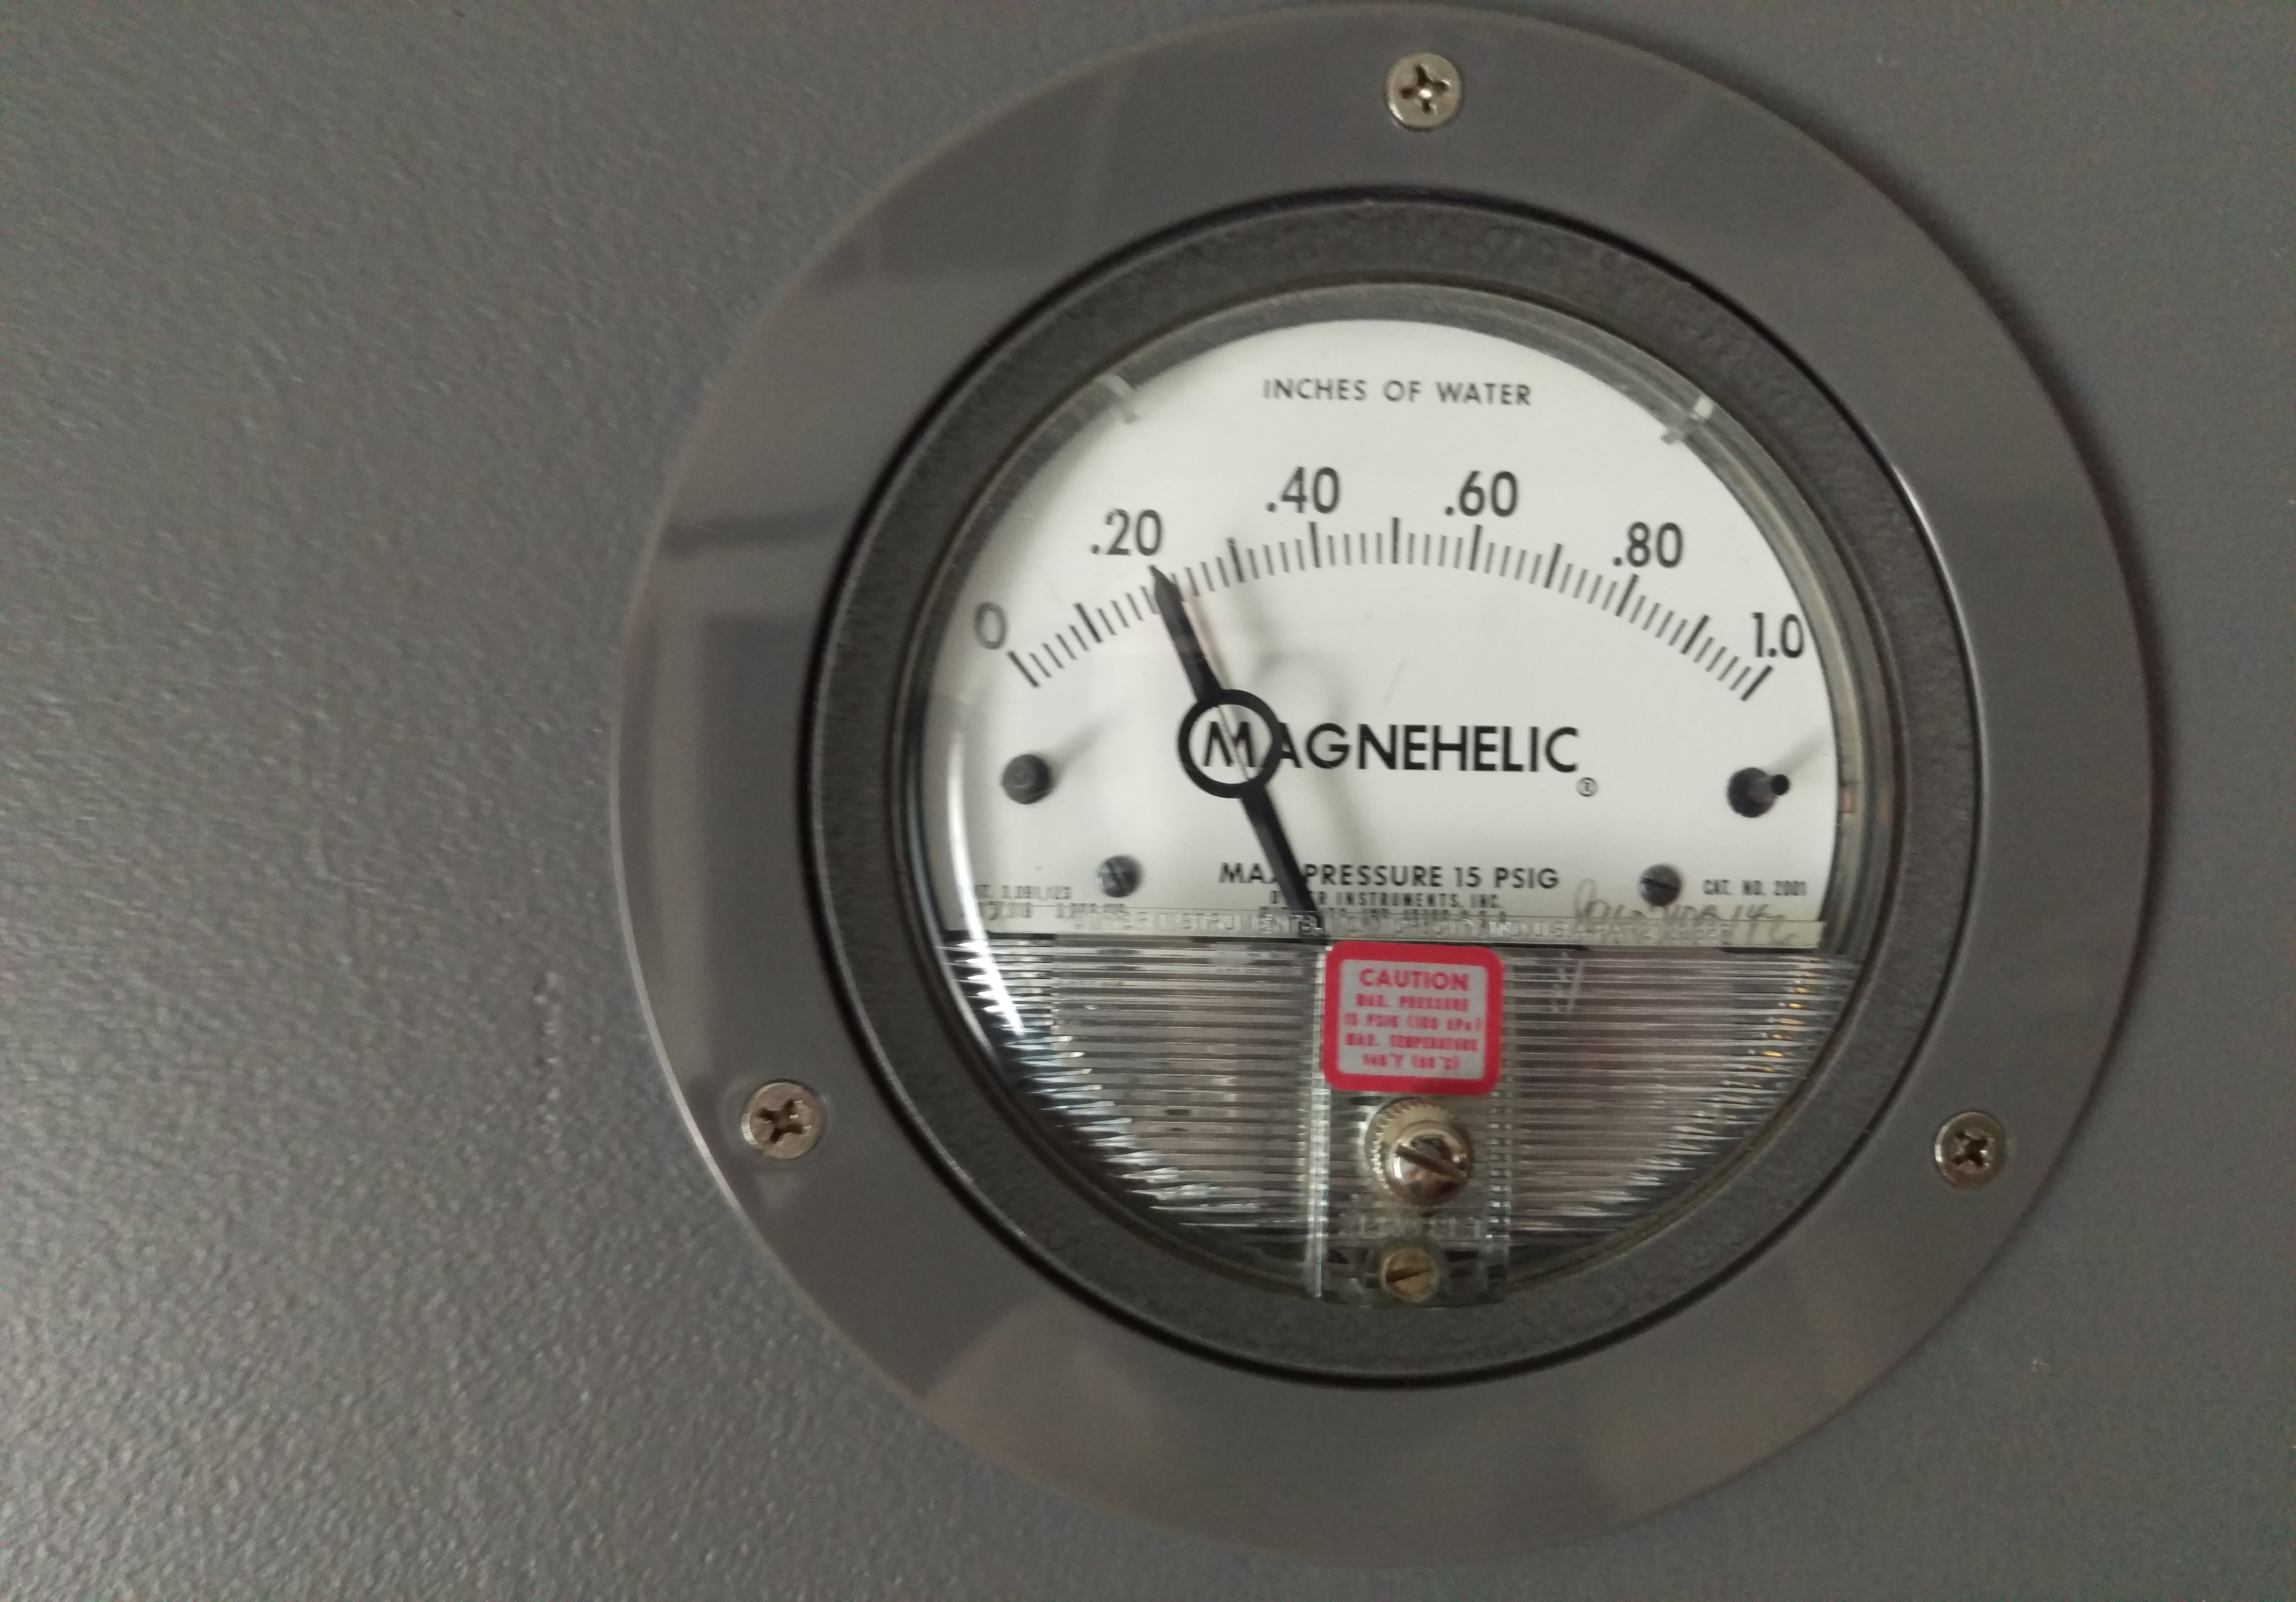 Acceptable system static pressure? — Heating Help: The Wall